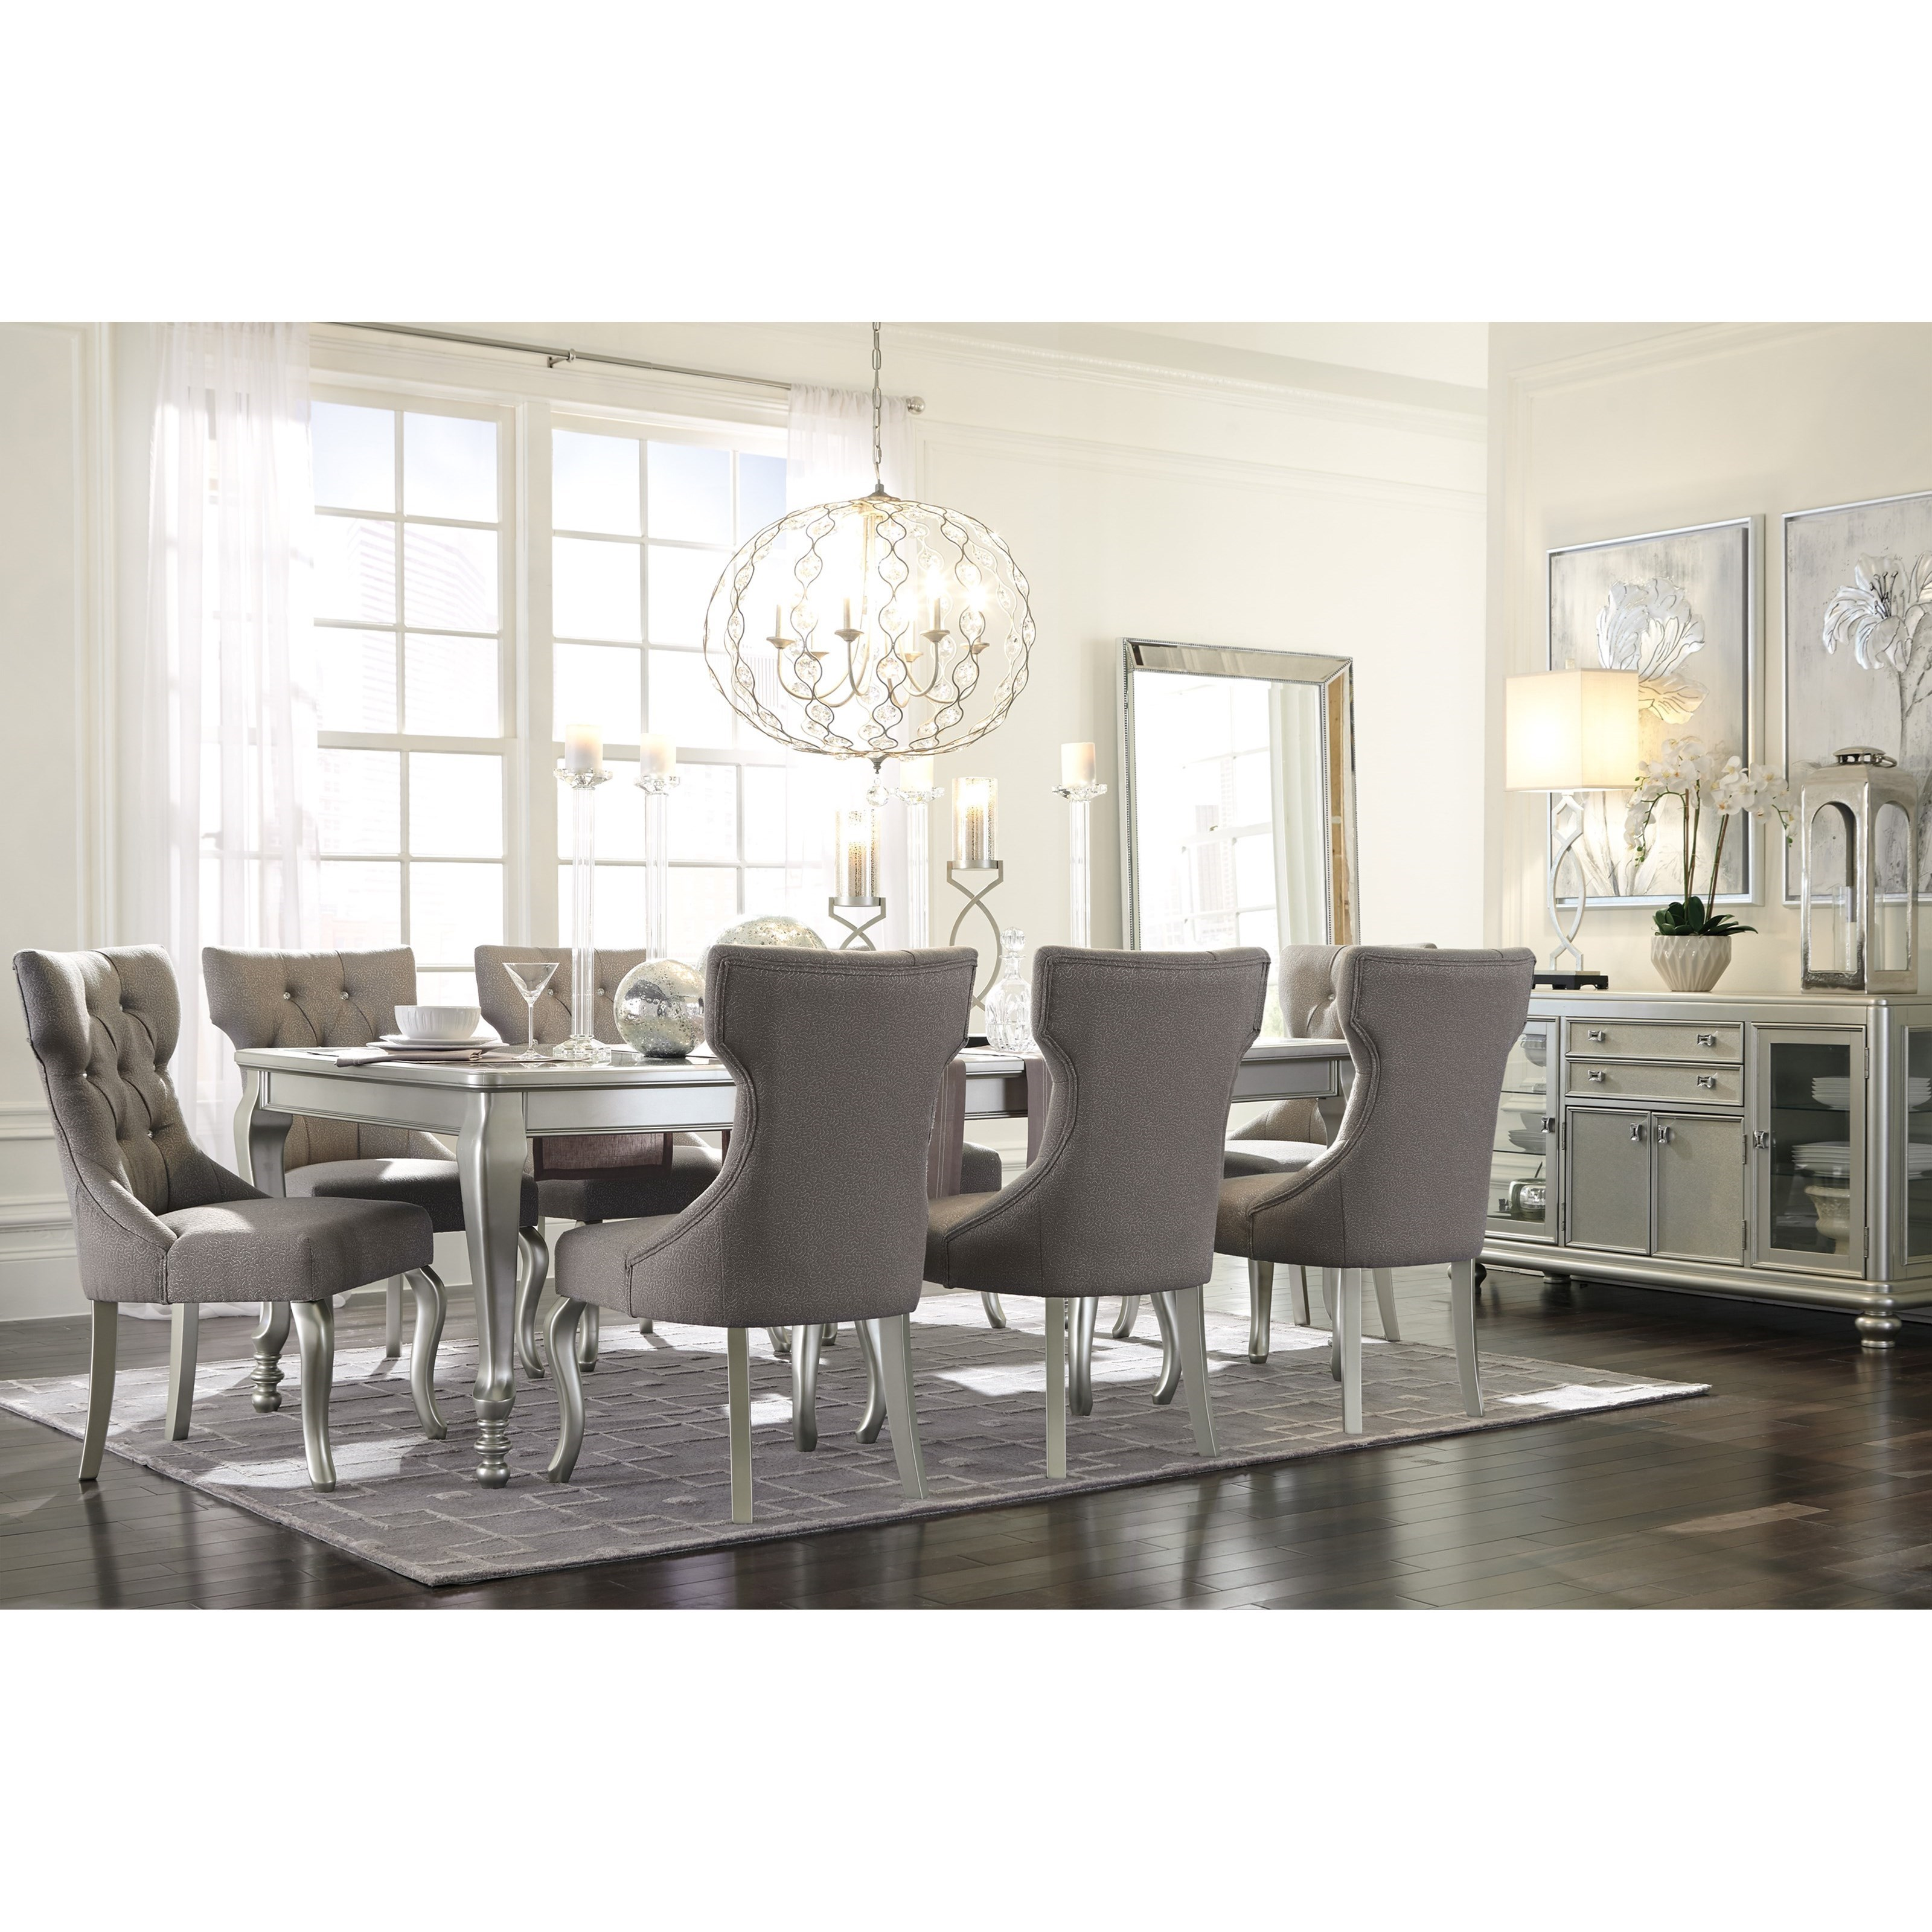 Coralayne Formal Dining Room Group by Signature Design by Ashley at Northeast Factory Direct